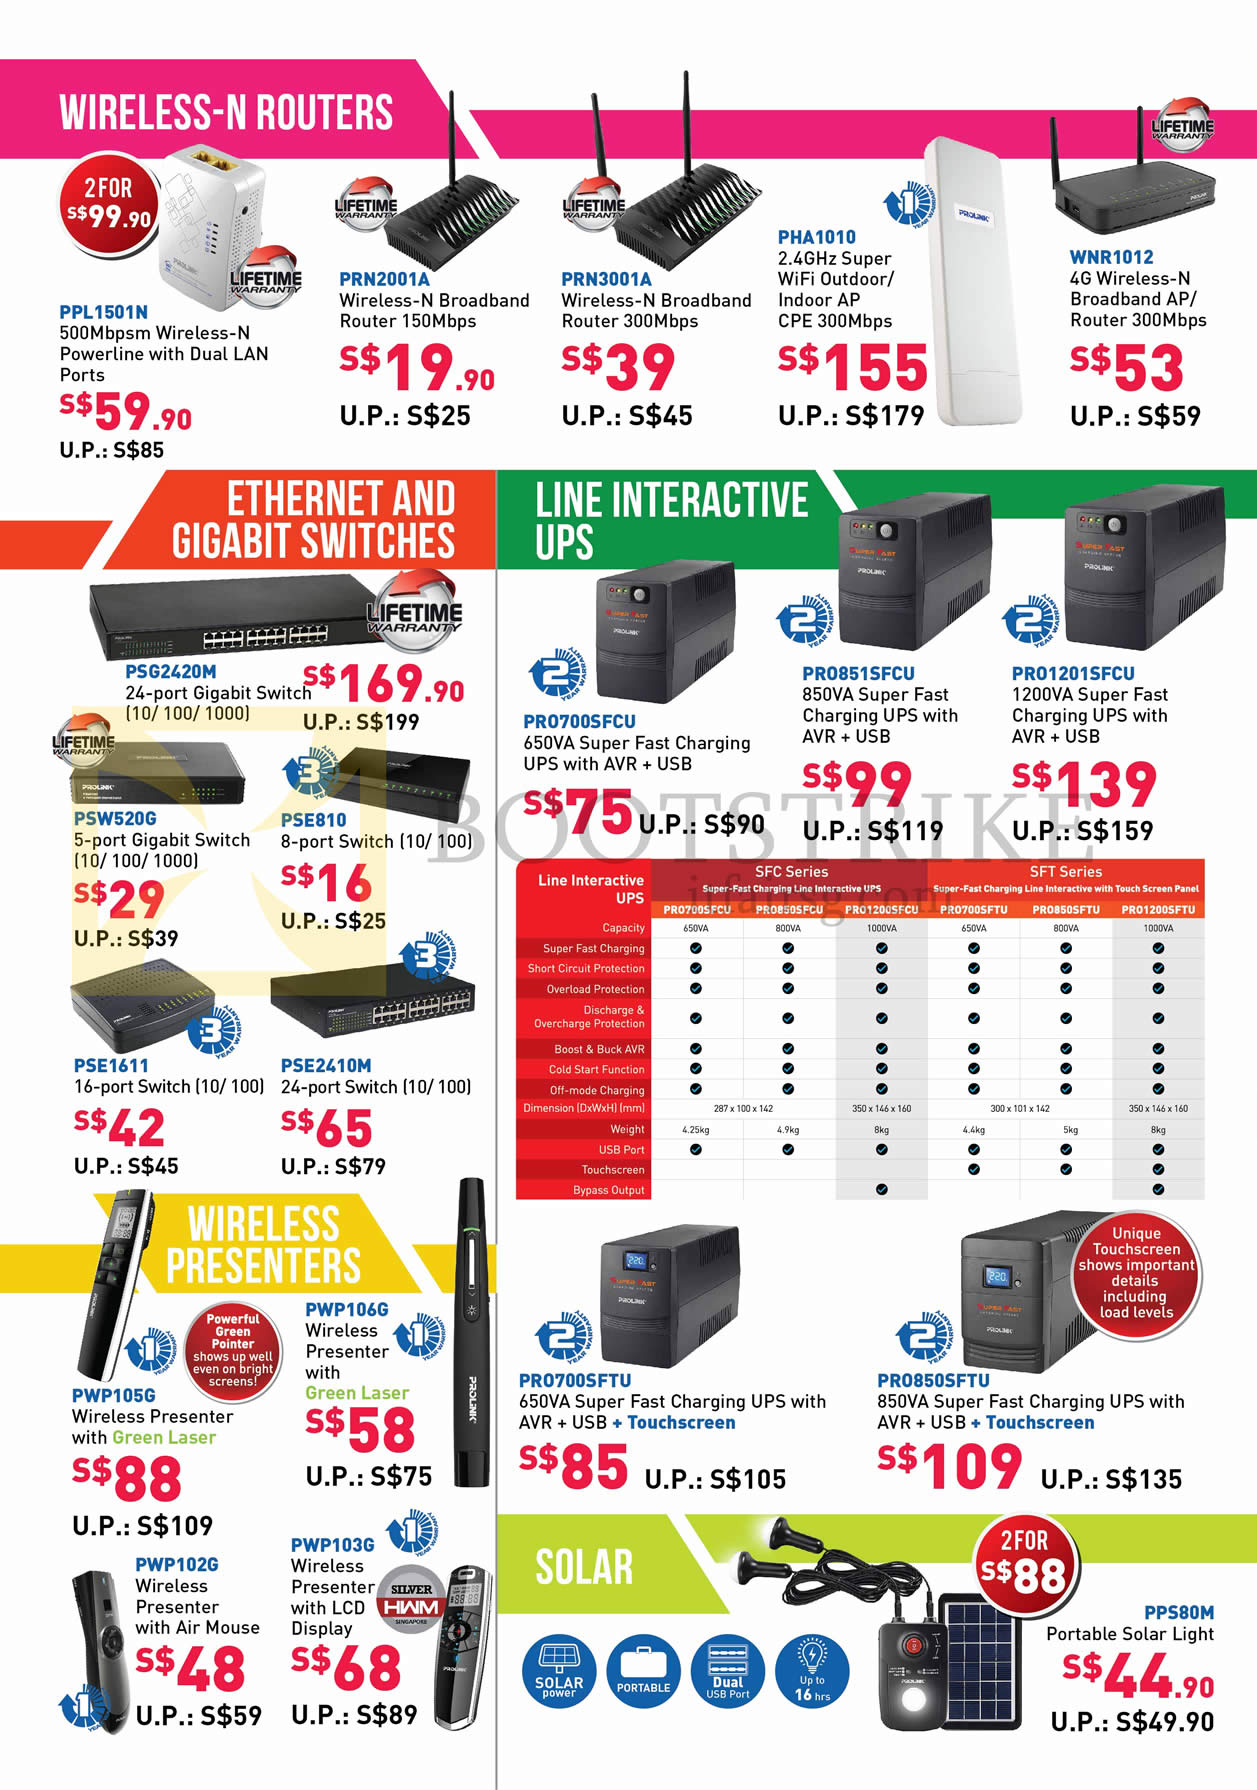 PC SHOW 2016 price list image brochure of Prolink Wireless N Routers, Ethernet, Gigabit Switches, Line Interactive UPS, Wireless Presenters, Solar, PPL1501N, PRN2001A, 3001A, PSG2420M, PSW520G, PSE810, 1611, 2410M